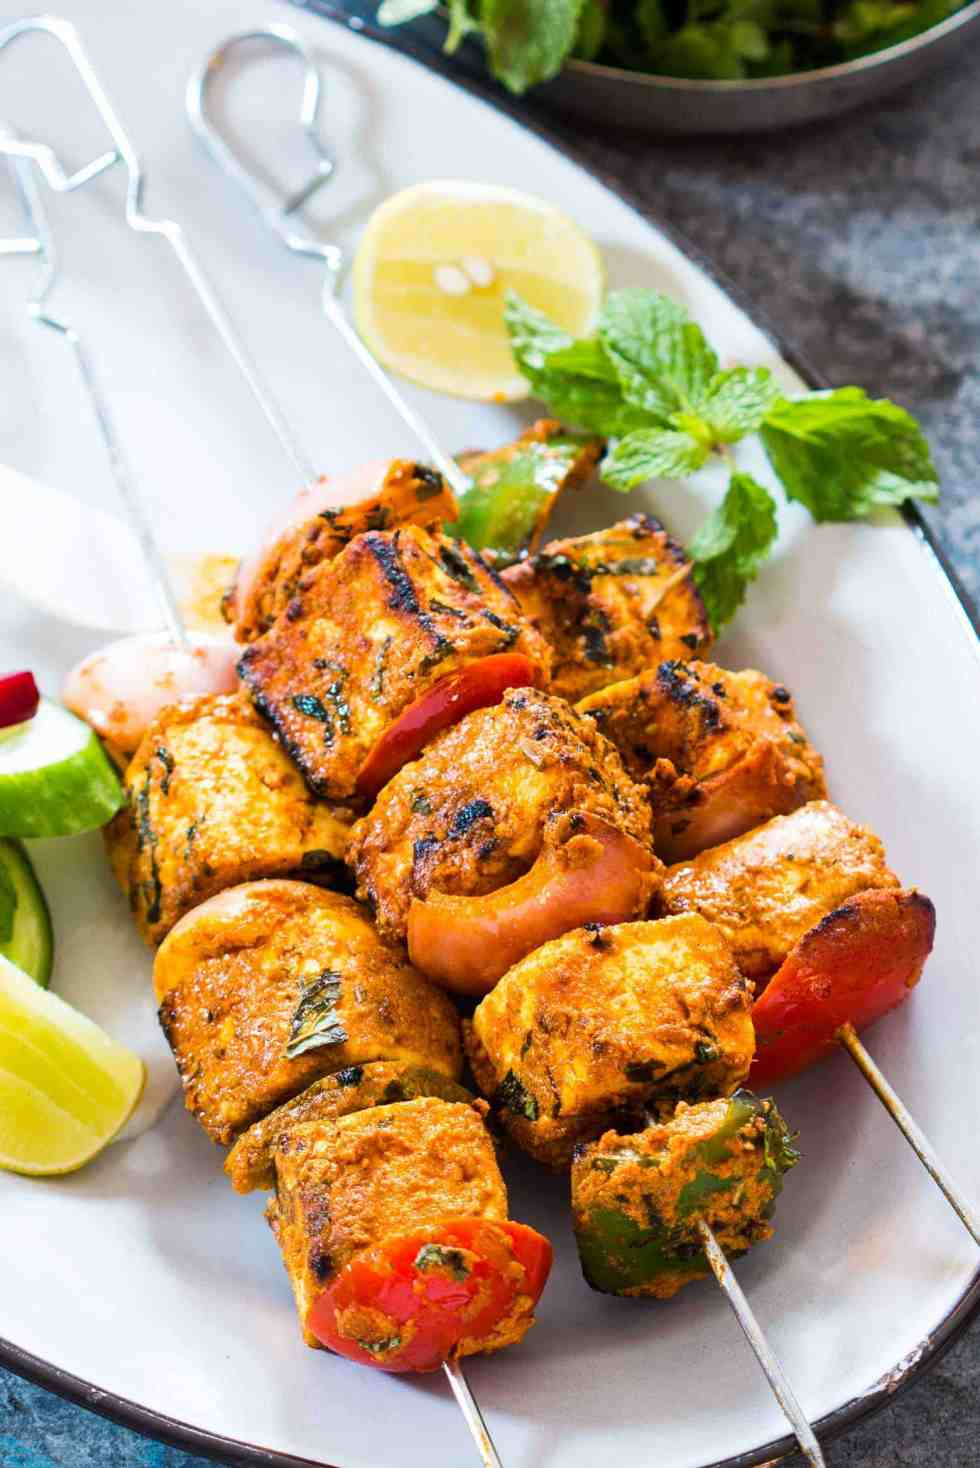 This is the best Tandoori Paneer Tikka in the oven you'll ever make at home! Same restaurant style taste, but roasted in the oven.